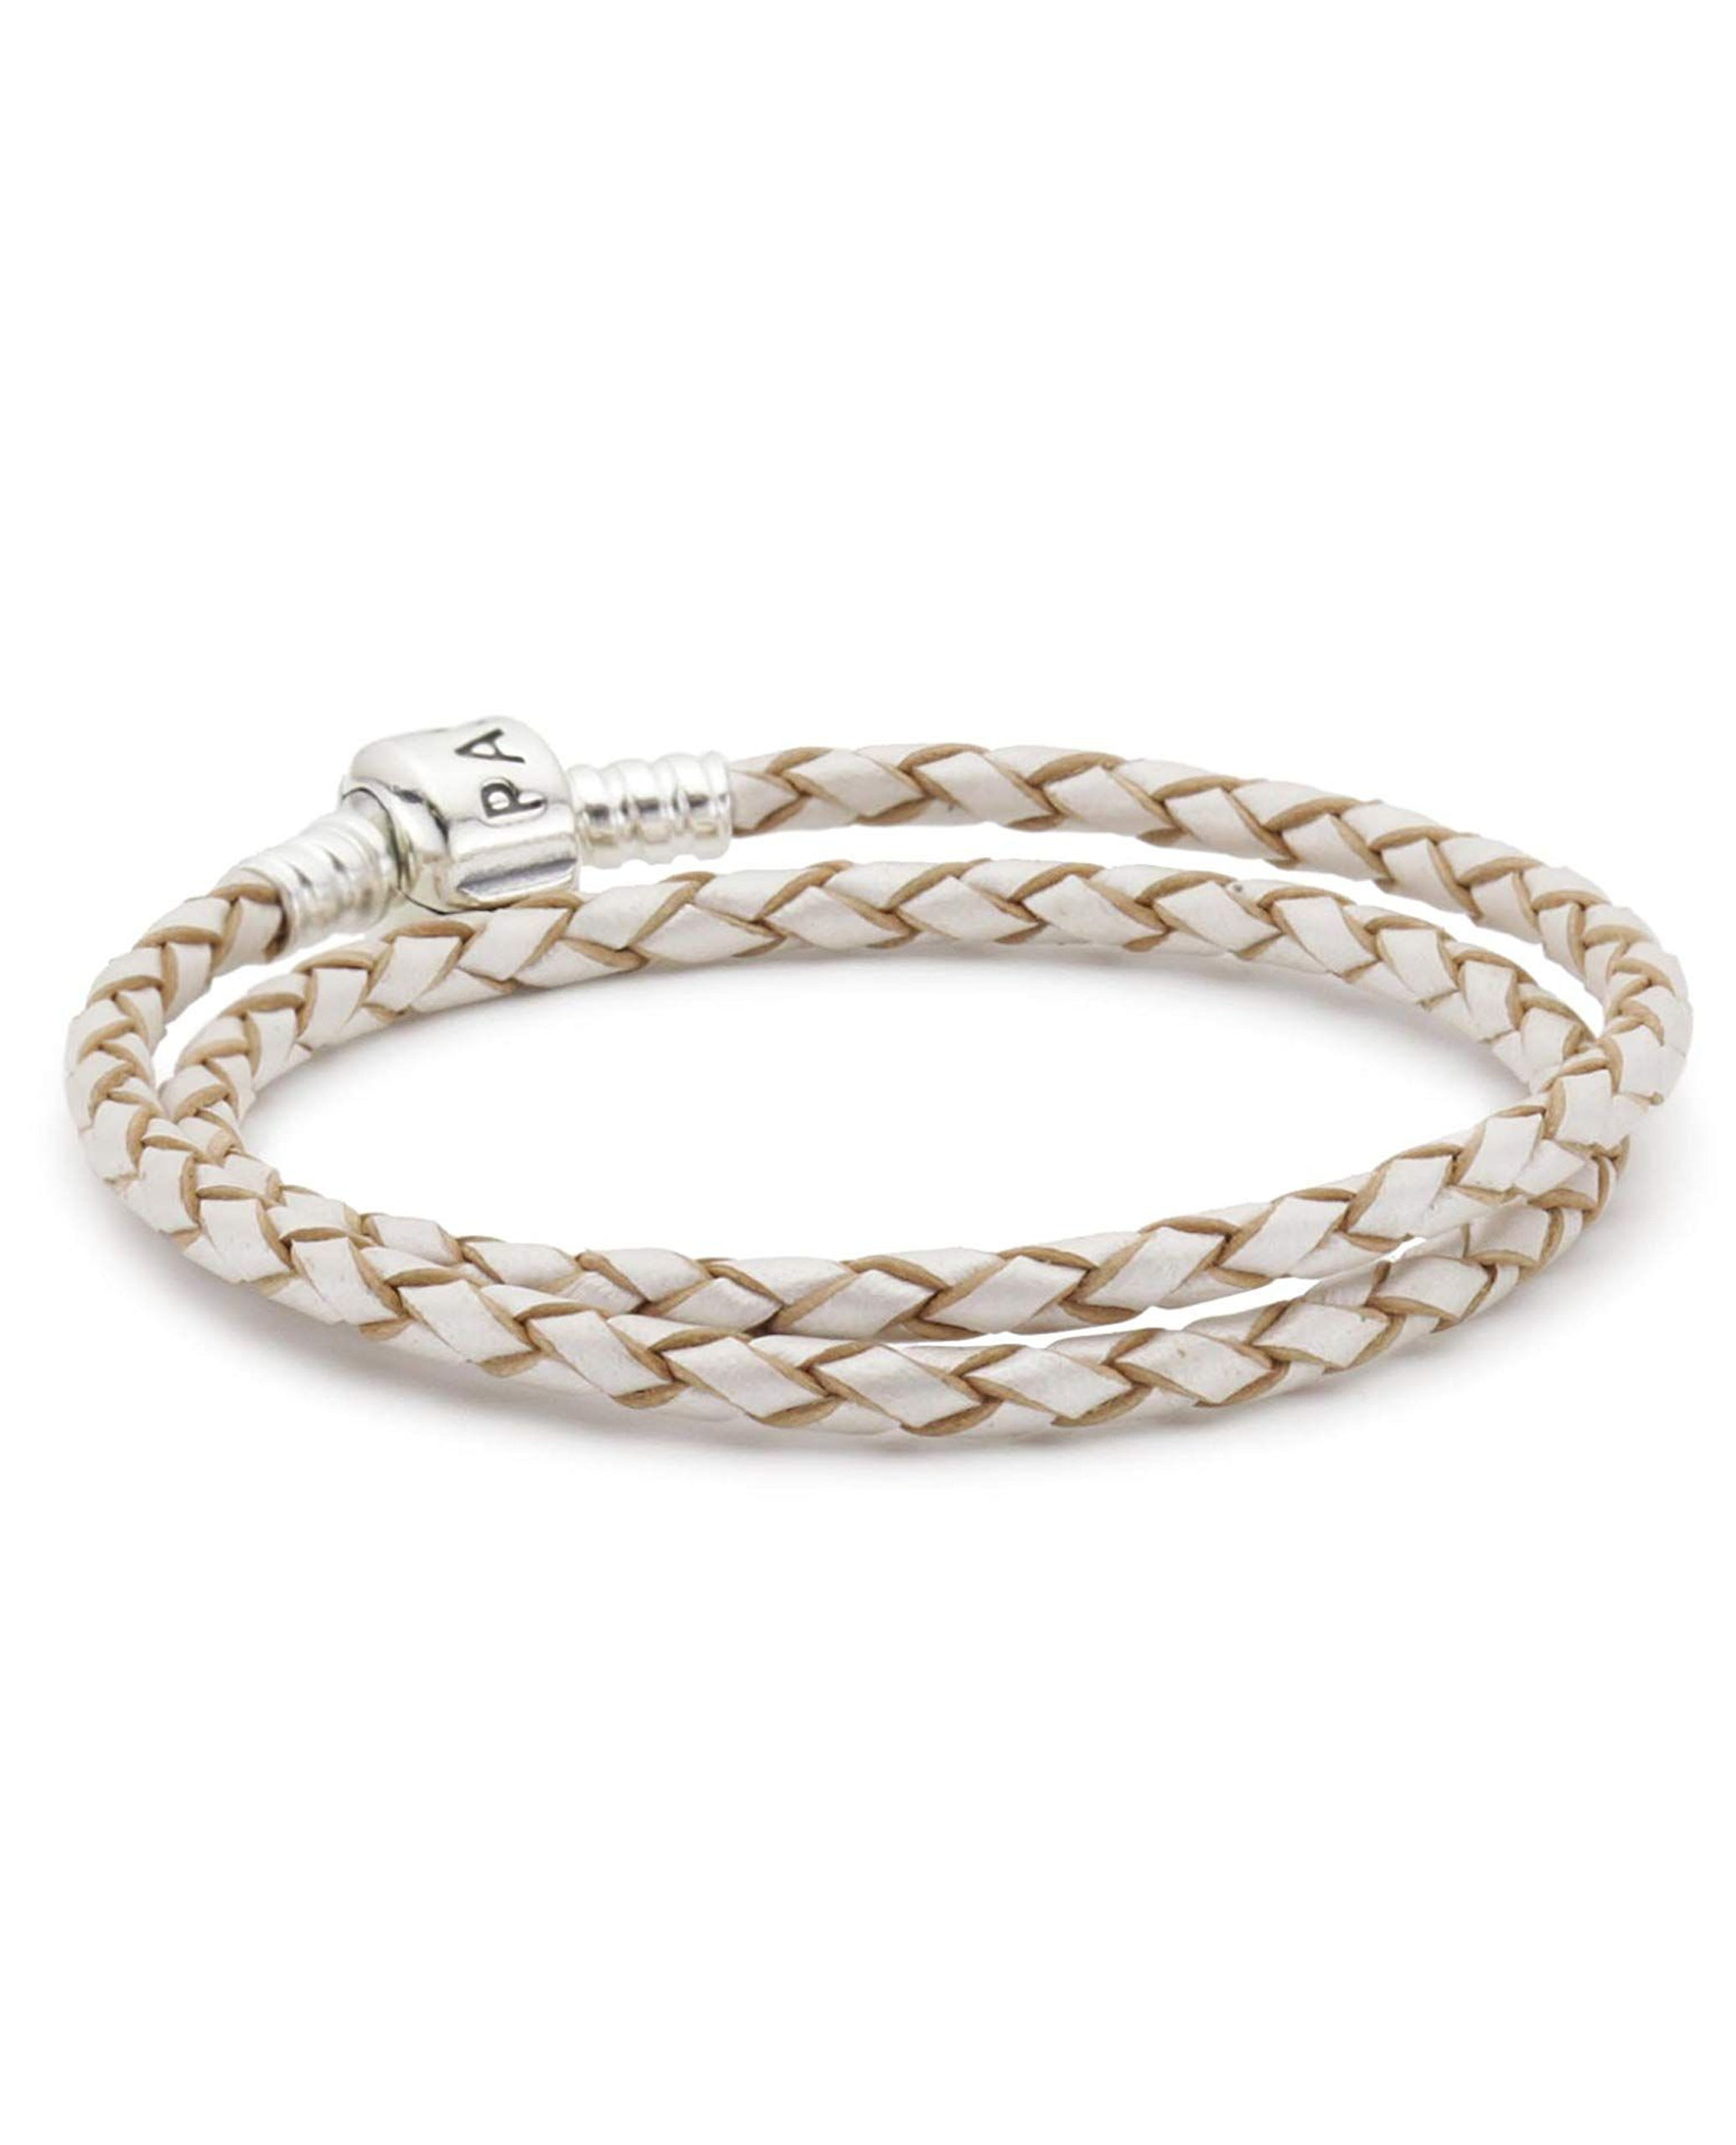 Pandora 590705CPL Champagne Leather Necklace/Double Bracelet. (Choose free two-day shipping at checkout)